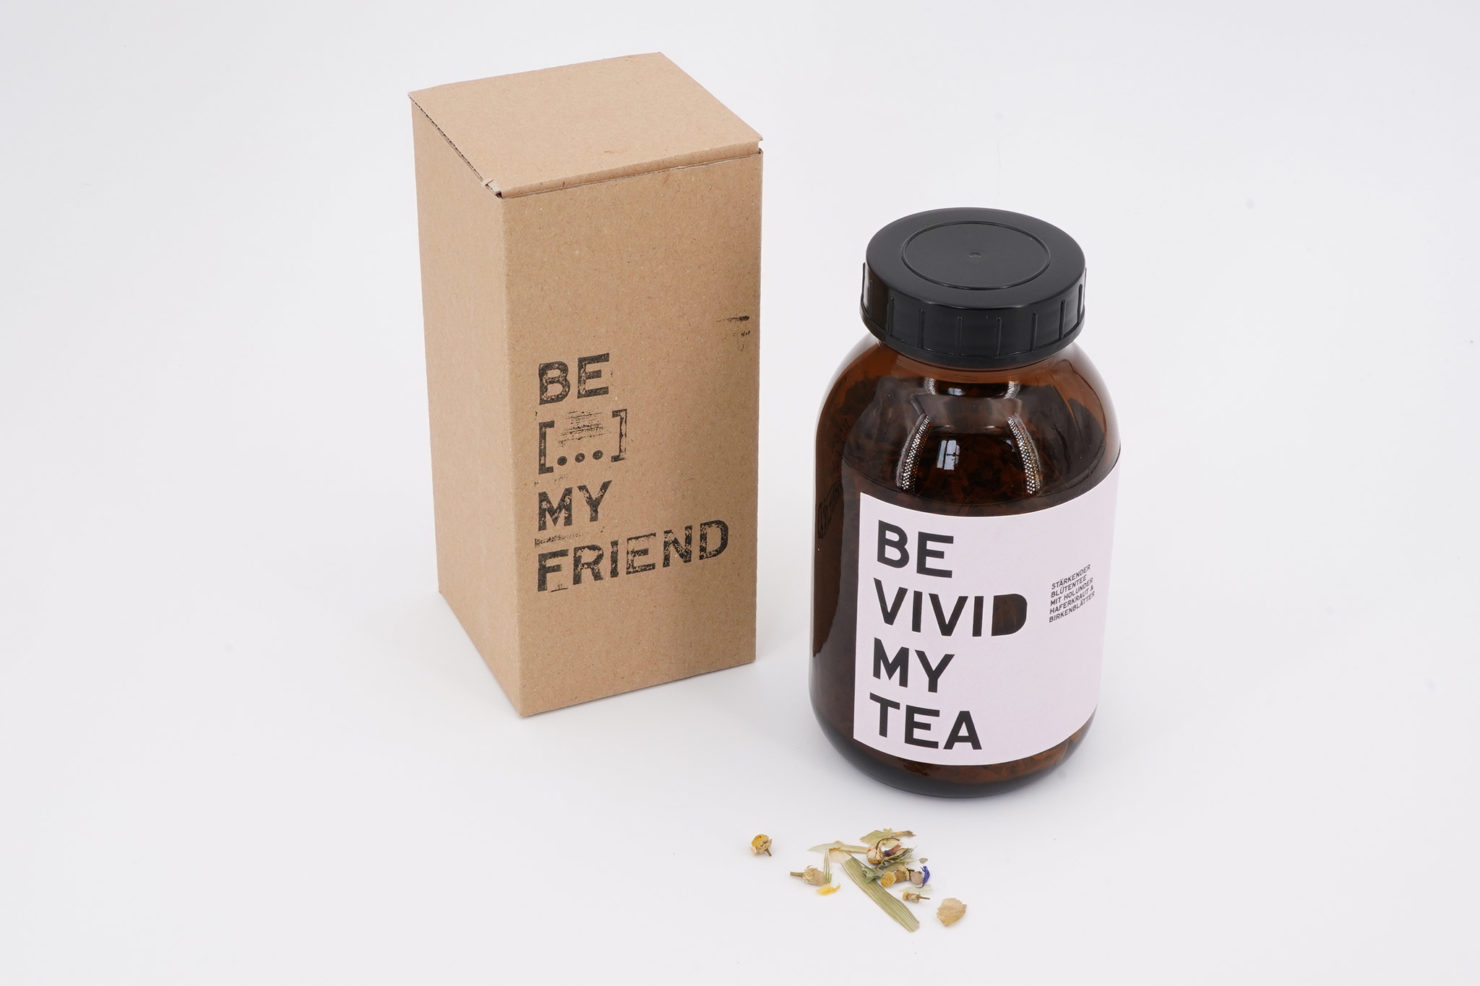 BE VIVID MY TEA 50G BE MY FRIEND